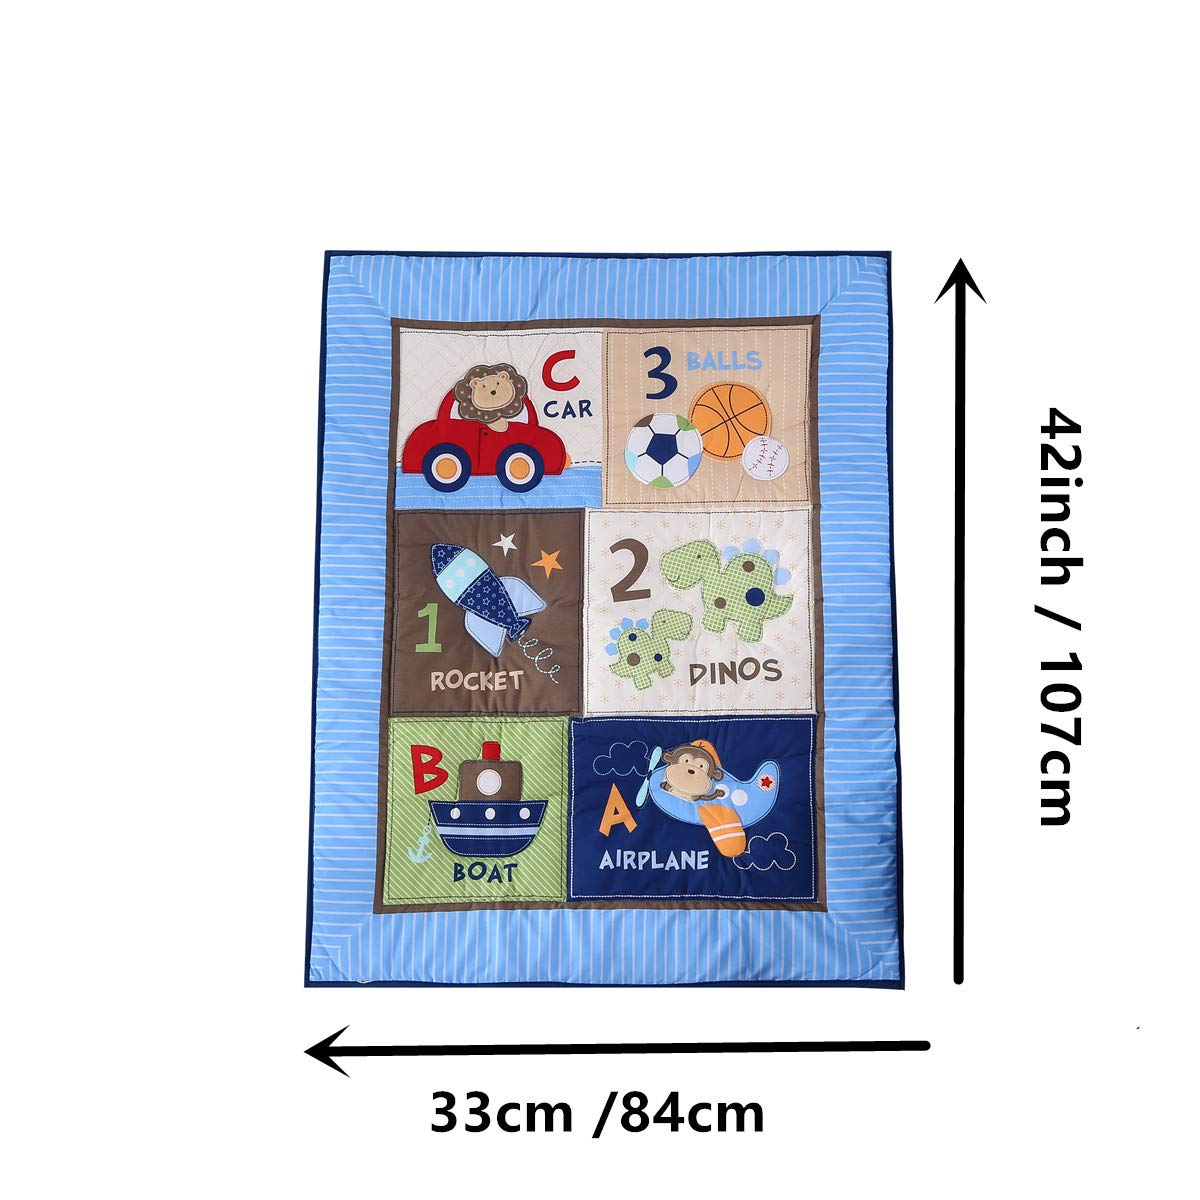 Wowelife Blue Crib Bedding Sets for Boys 7 Piece Travel Car and Airplane for Baby(Little Pilot) by Wowelife (Image #4)